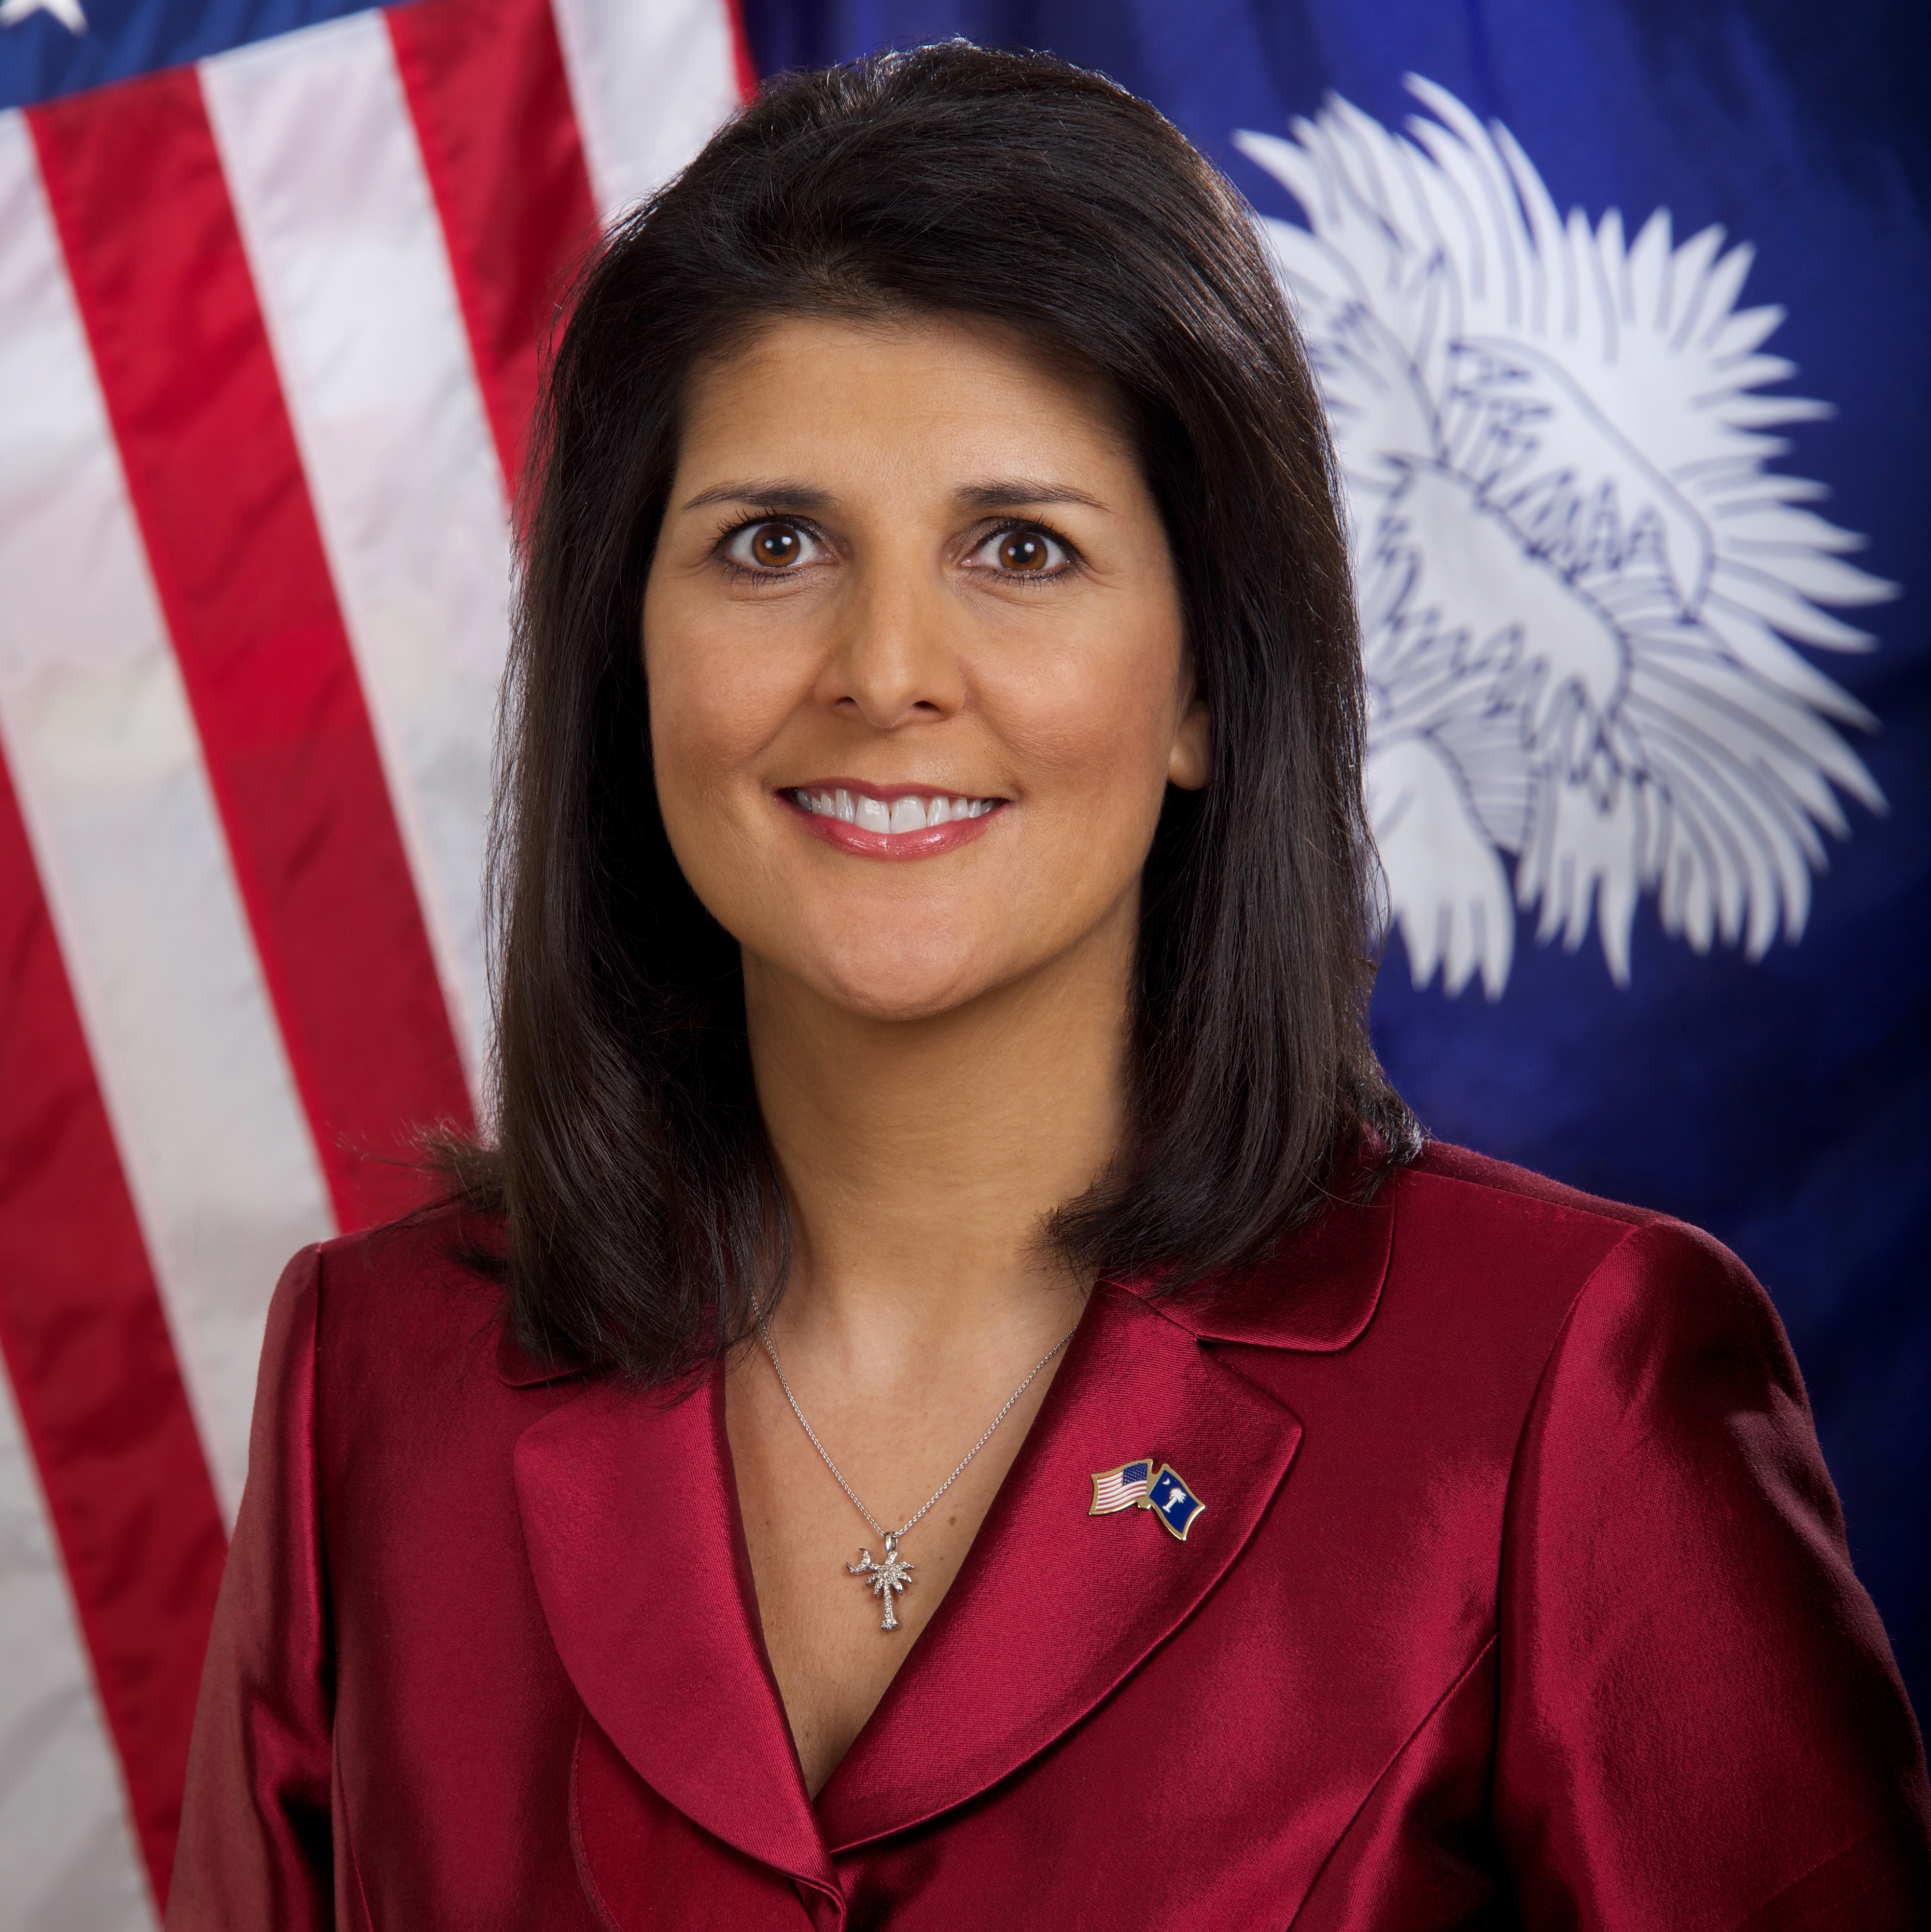 Nikki Haley: First Indian American to get Cabinet-Level Position